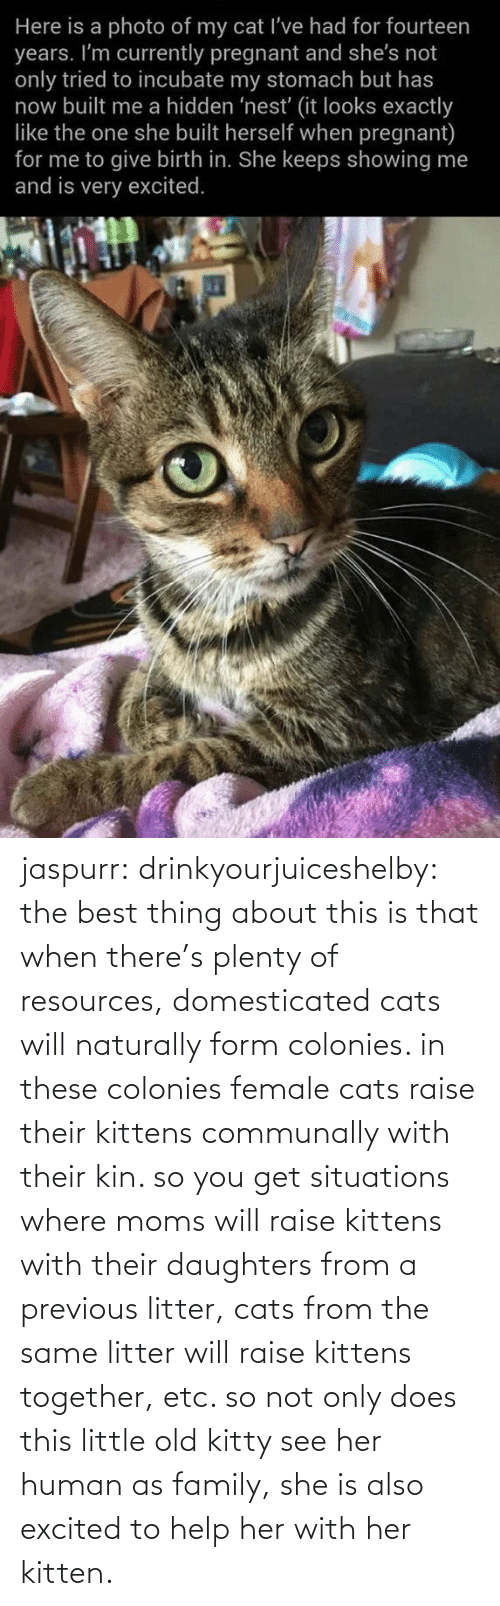 About: jaspurr:  drinkyourjuiceshelby:    the best thing about this is that when there's plenty of resources, domesticated cats will naturally form colonies. in these colonies female cats raise their kittens communally with their kin. so you get situations where moms will raise kittens with their daughters from a previous litter, cats from the same litter will raise kittens together, etc. so not only does this little old kitty see her human as family, she is also excited to help her with her kitten.